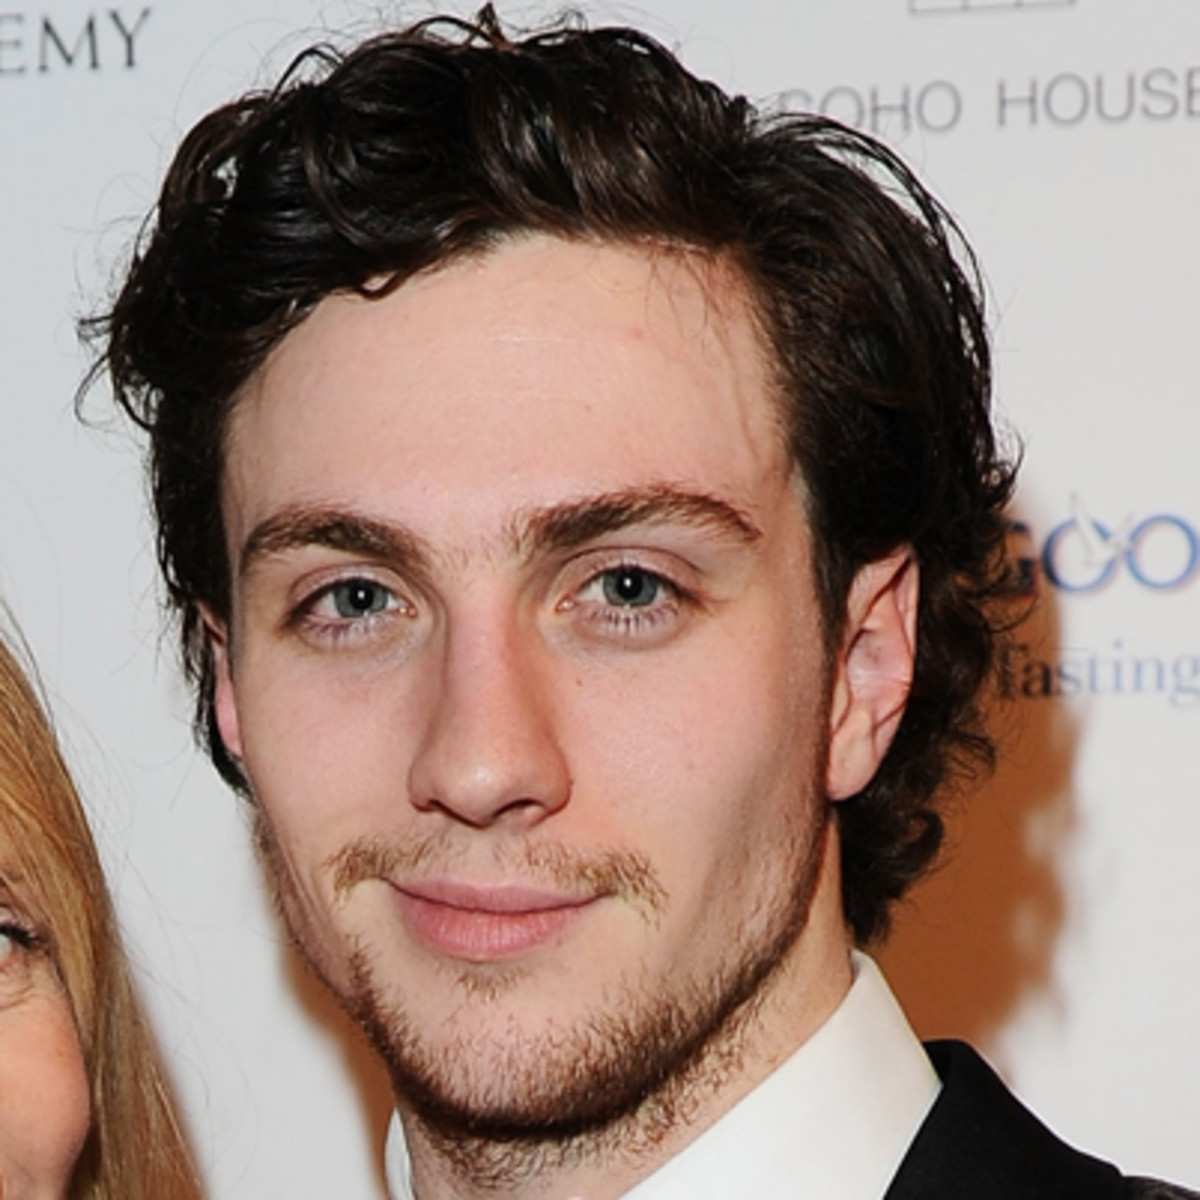 picture Aaron Taylor-Johnson (born 1990)